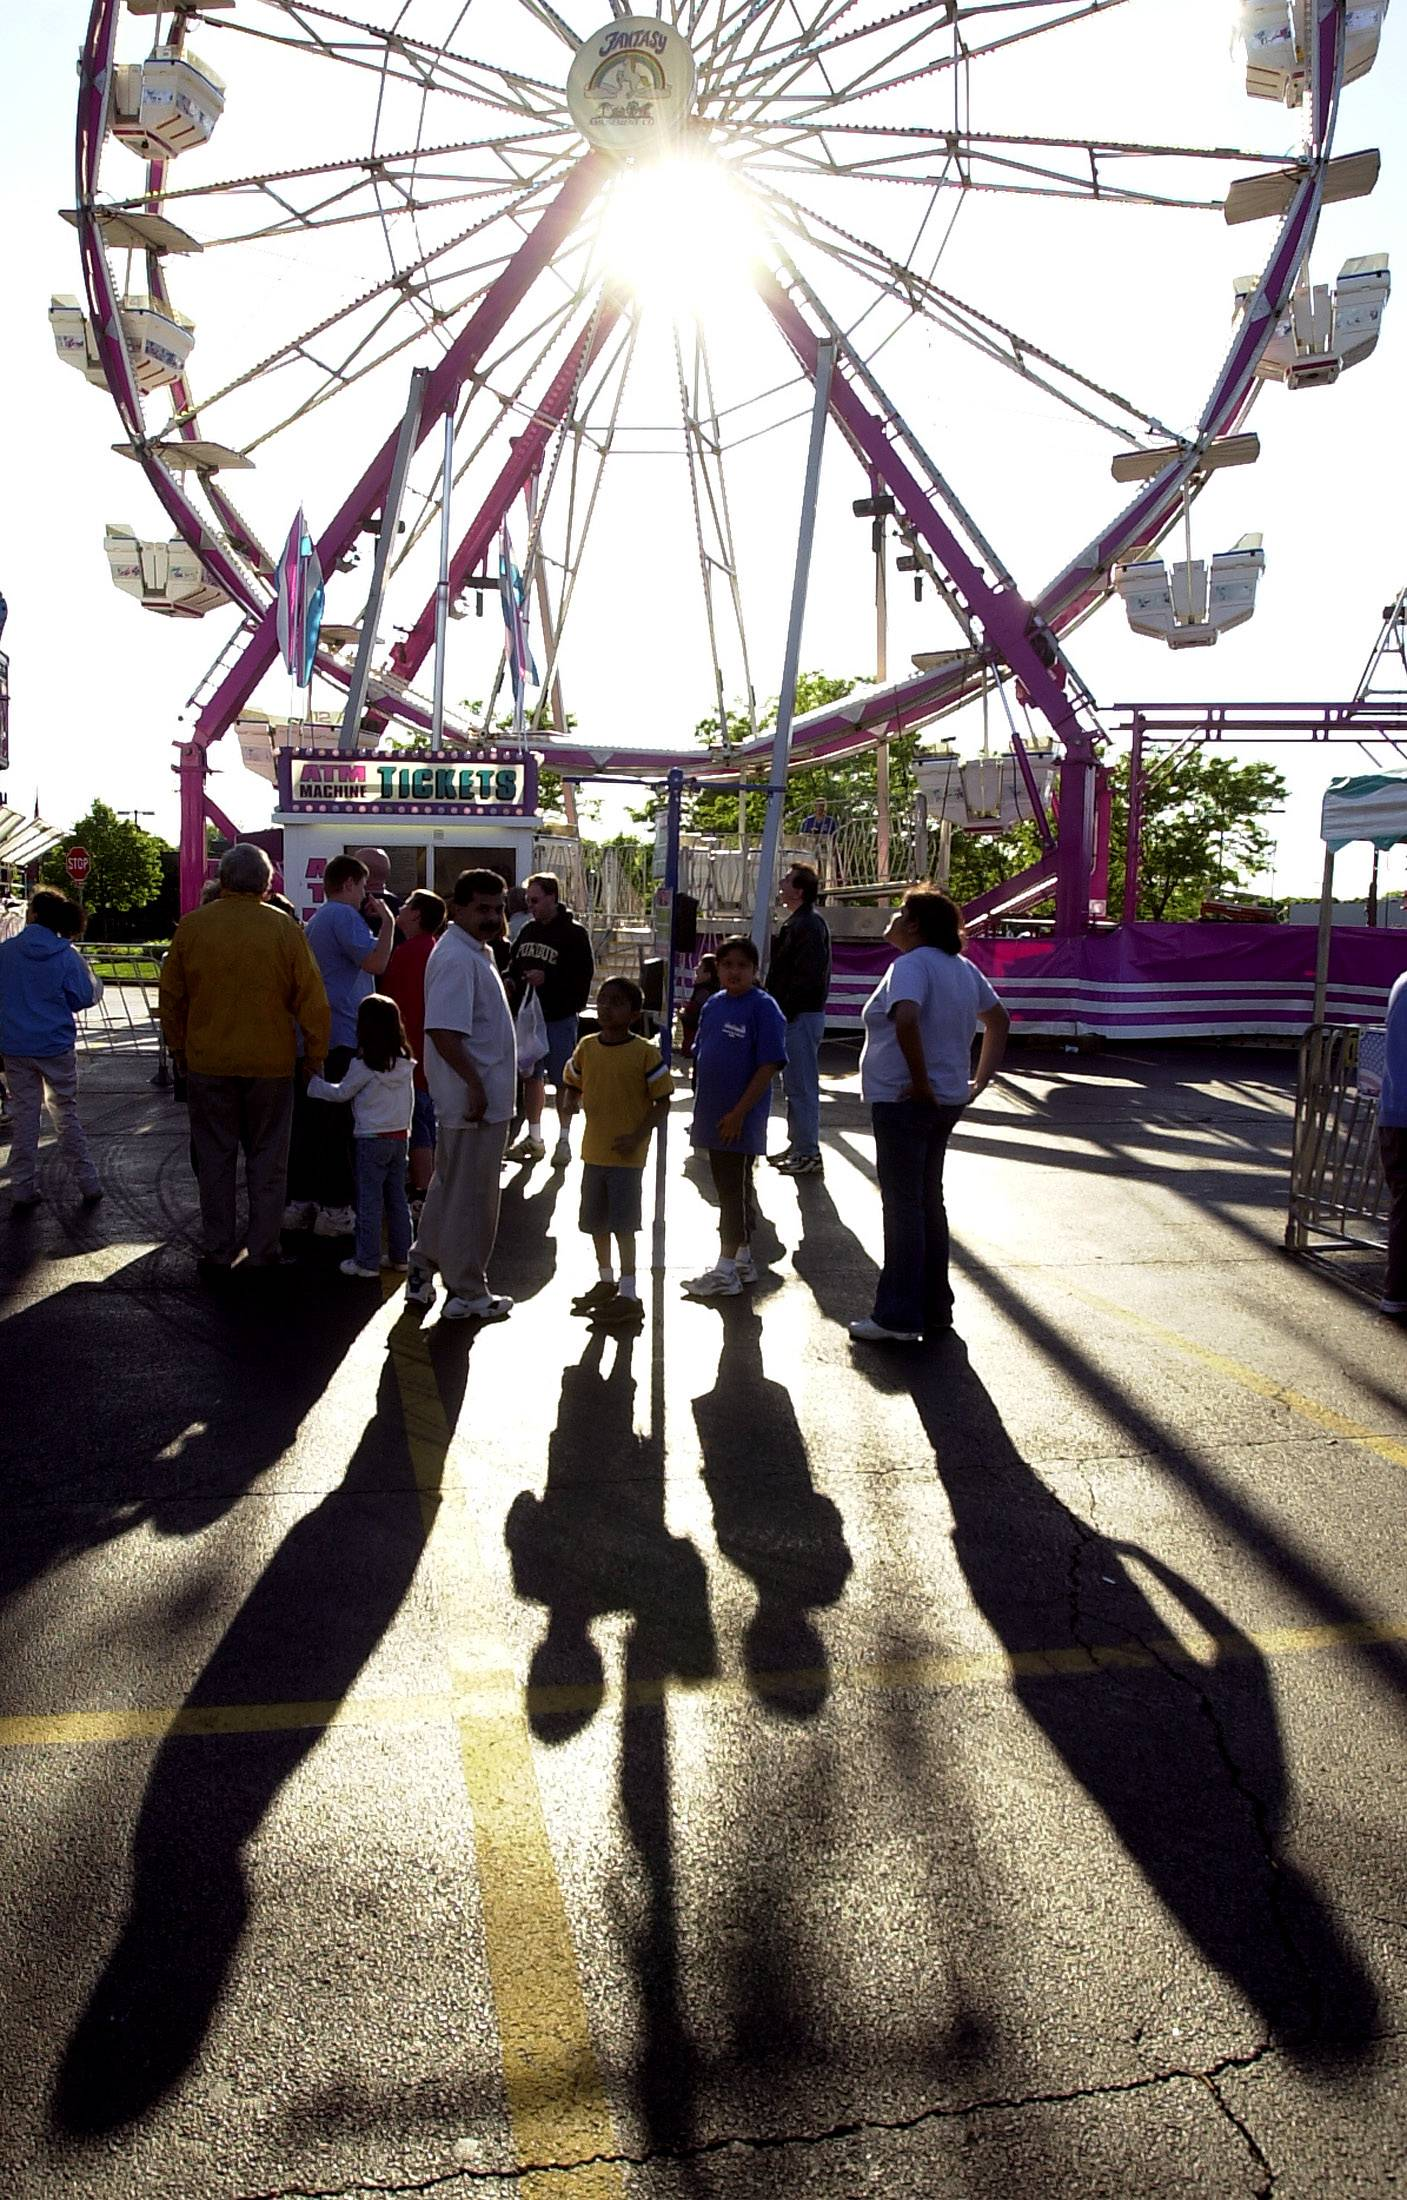 The Mount Prospect Jaycees Memorial Day Carnival, for decades a beloved community tradition, returns this week after a three-year hiatus.